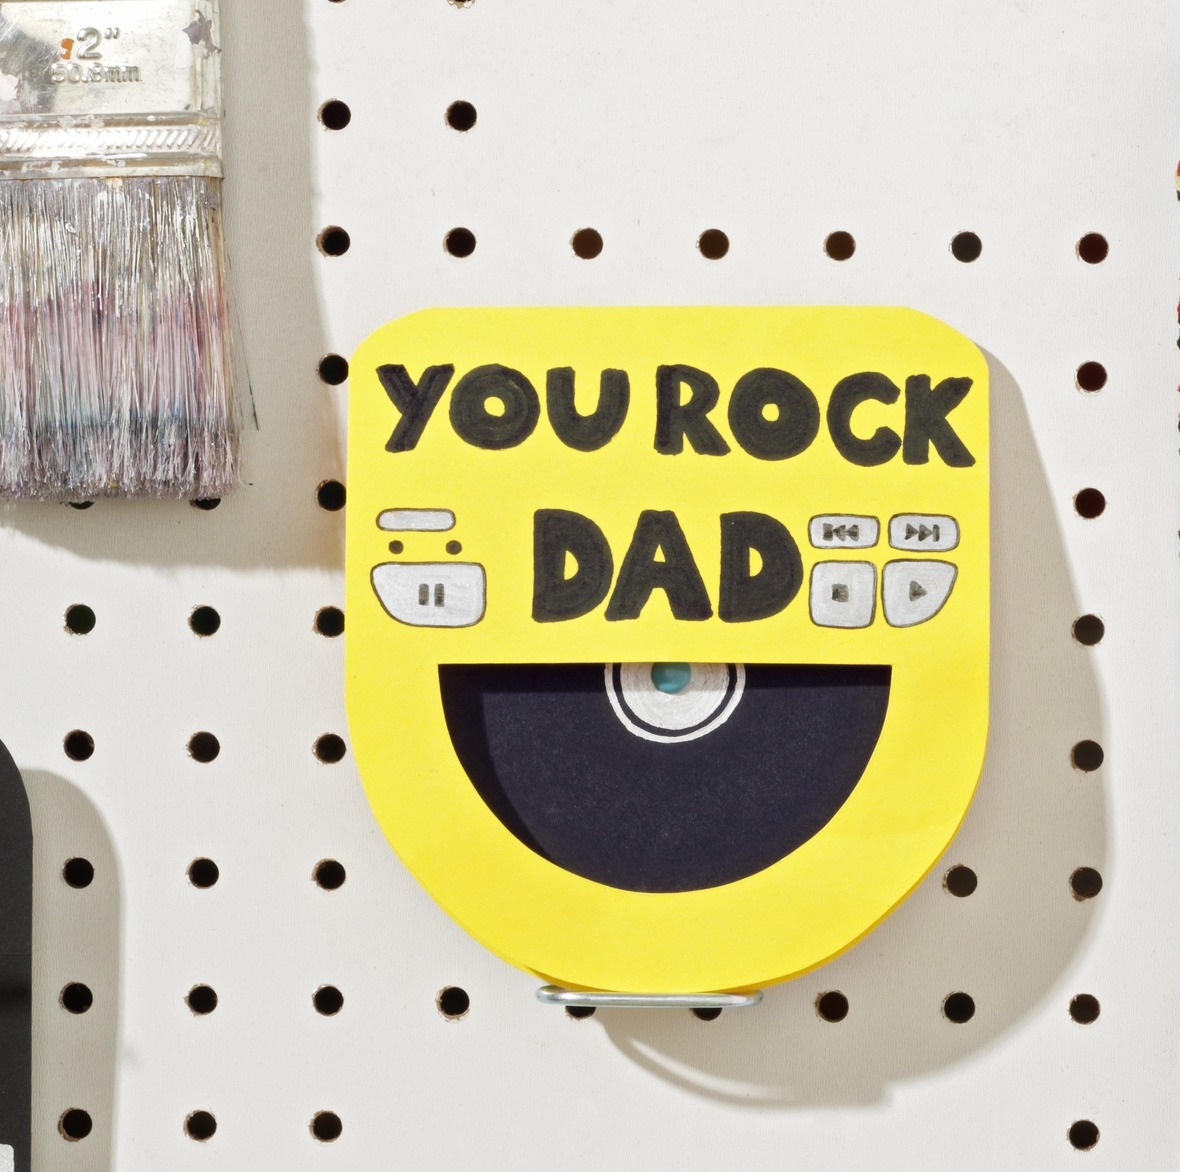 Dad Birthday Card Ideas Funny Dad Birthday Cards From Daughter Homemade Father S Day